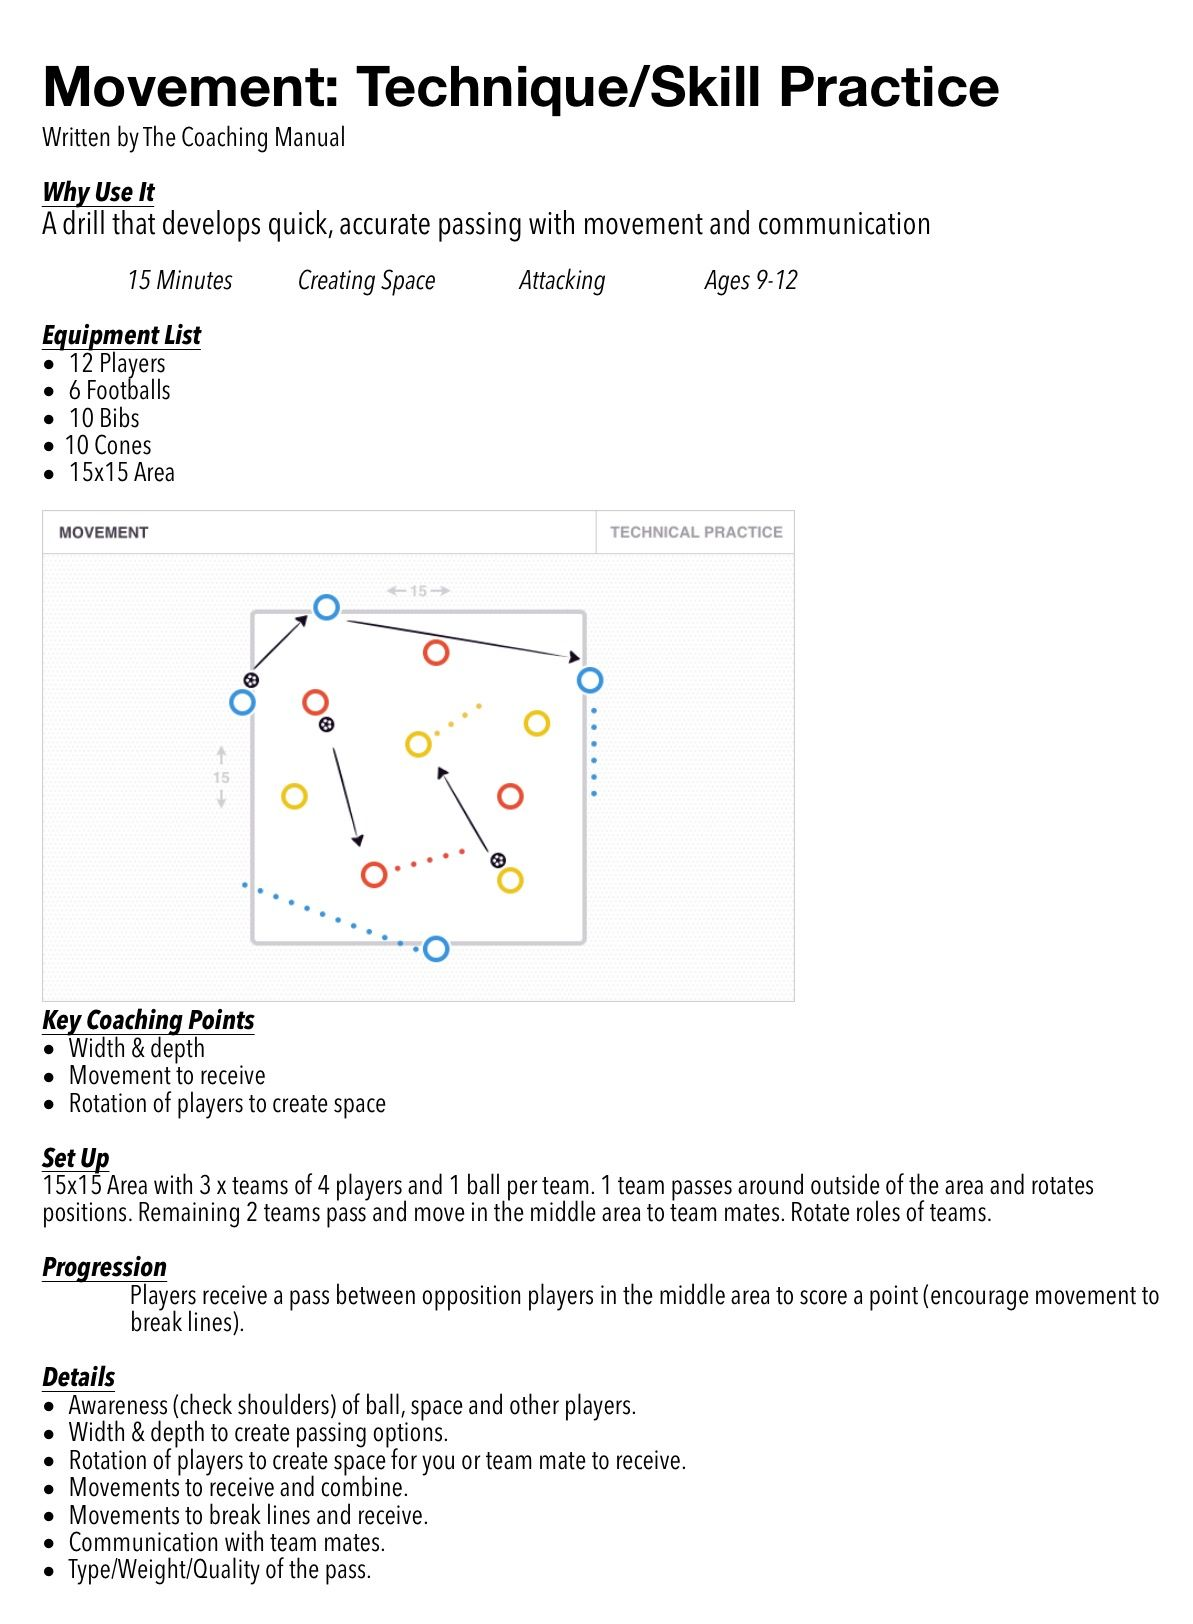 Movement Technique Skill Practice Thecoachingmanual Com Soccer Training Drills Skills Practice Soccer Training